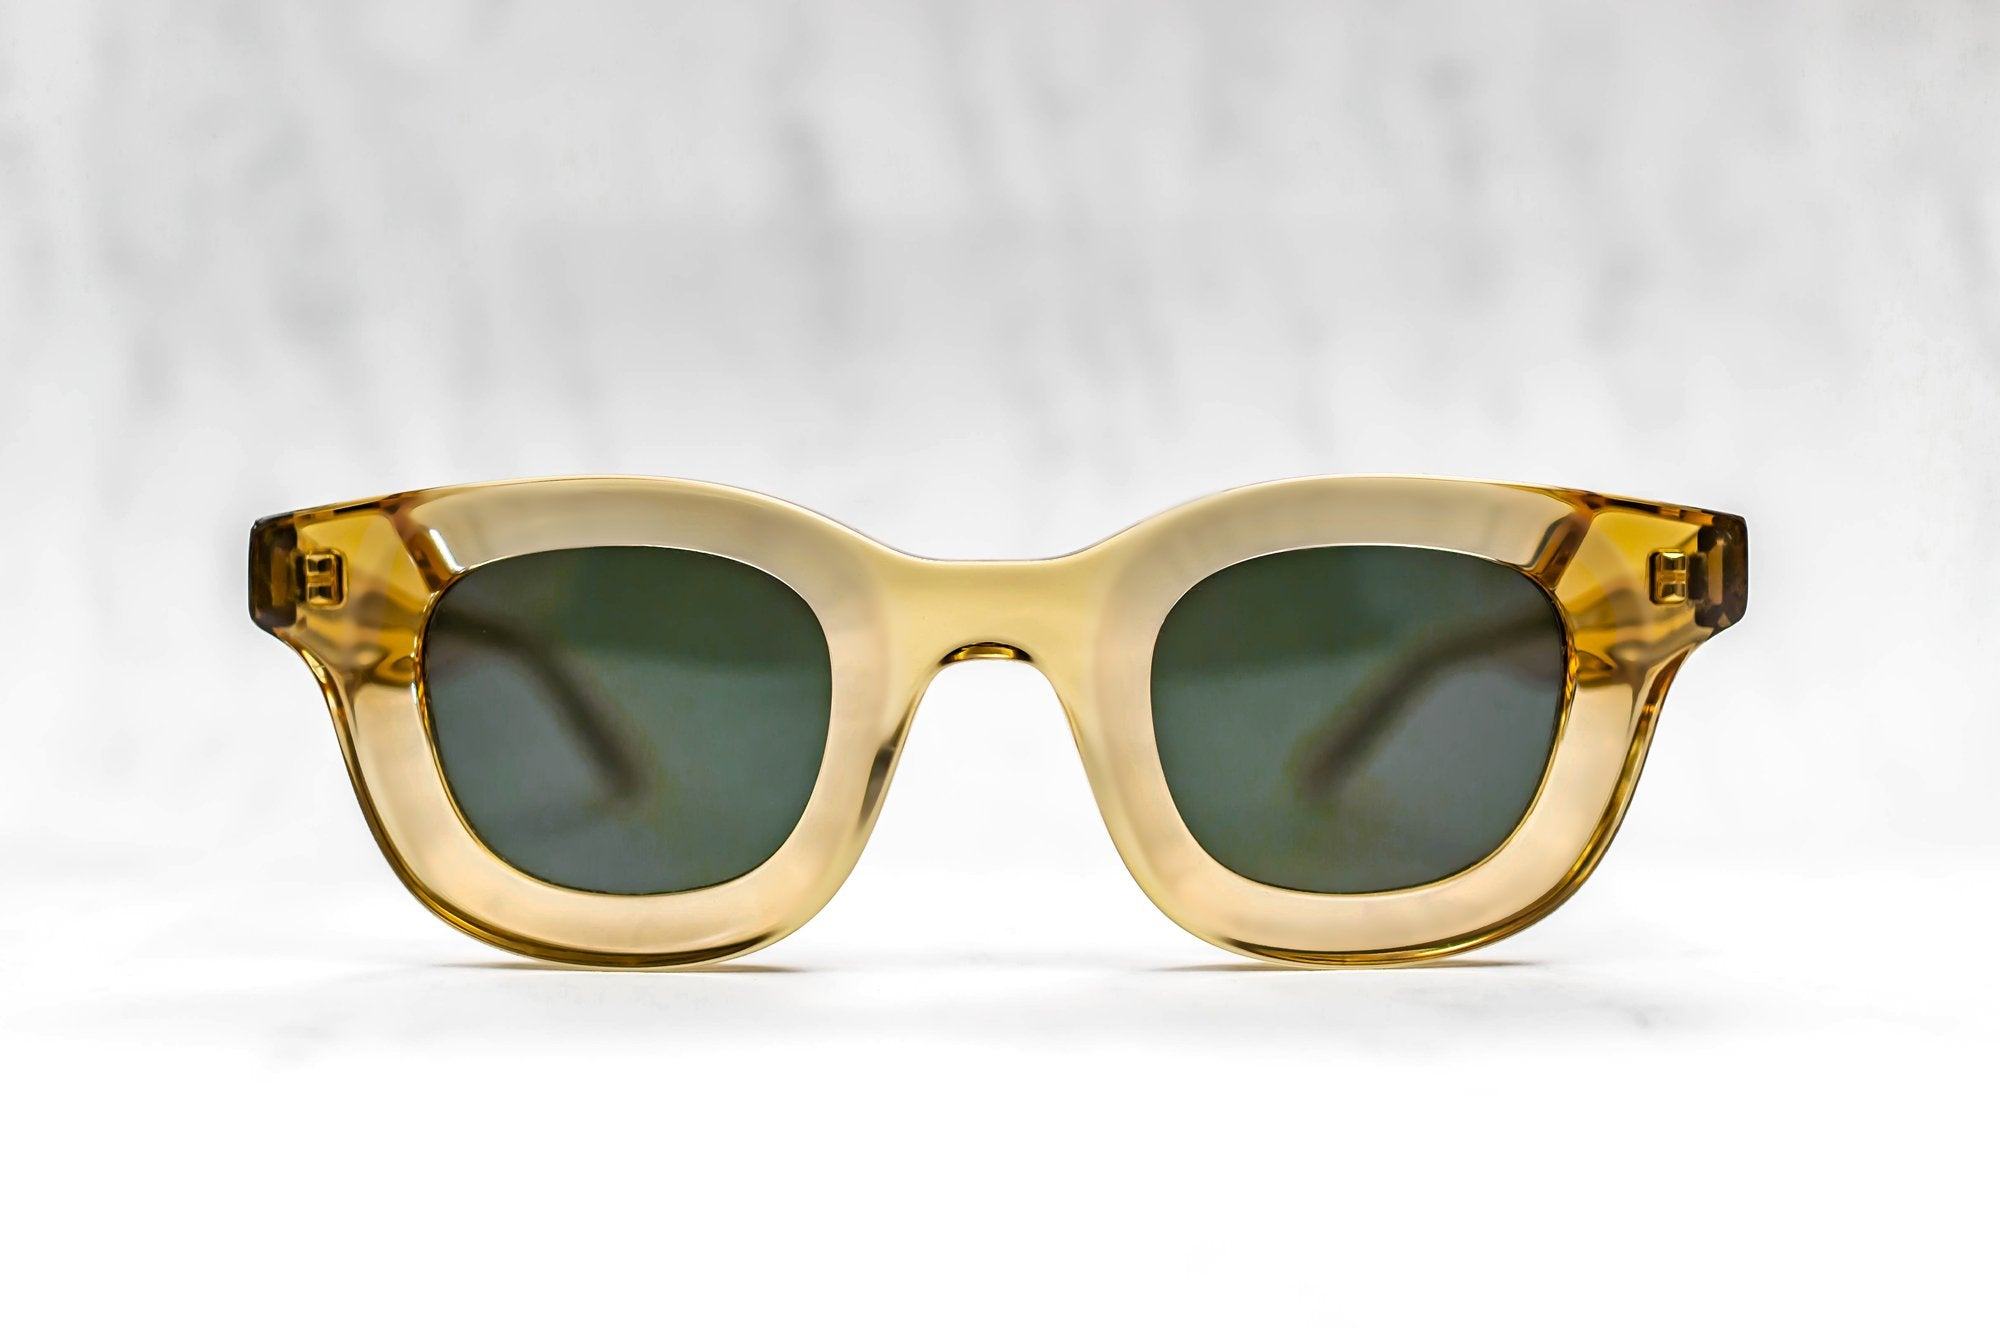 RHUDE x Thierry Lasry - Rhodeo Sunglasses in Transparent Honey w/ Flat Green Lenses (656)